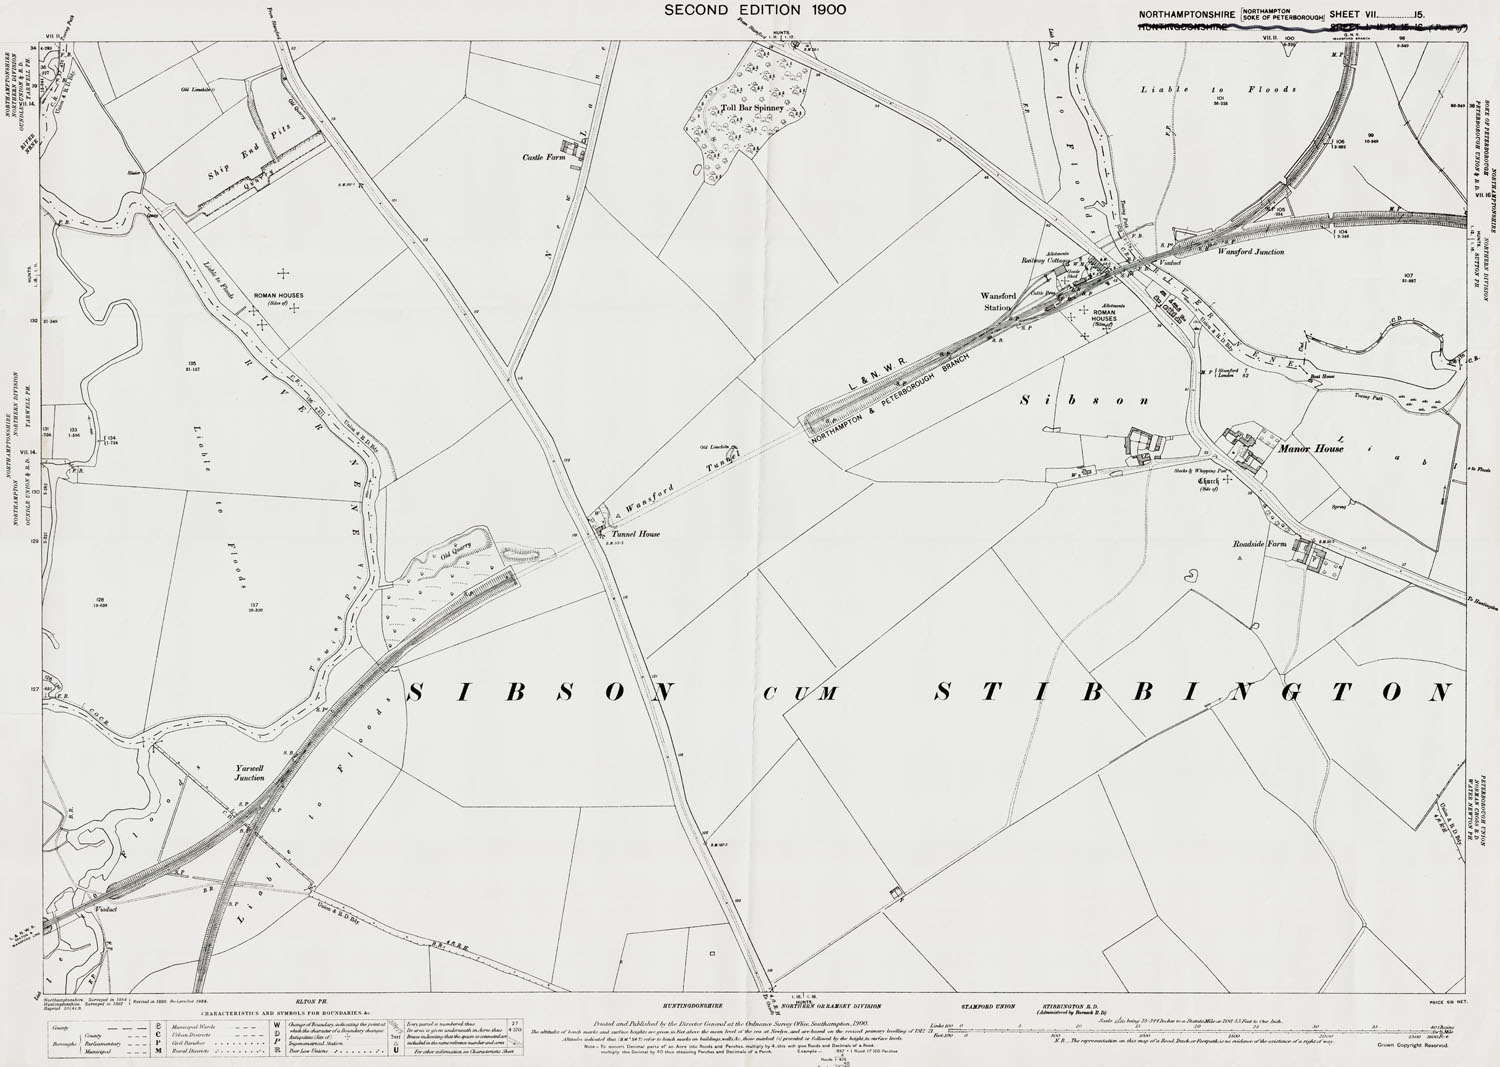 Old Ordnance Survey Map Of Wansford Station Northamptonshire In